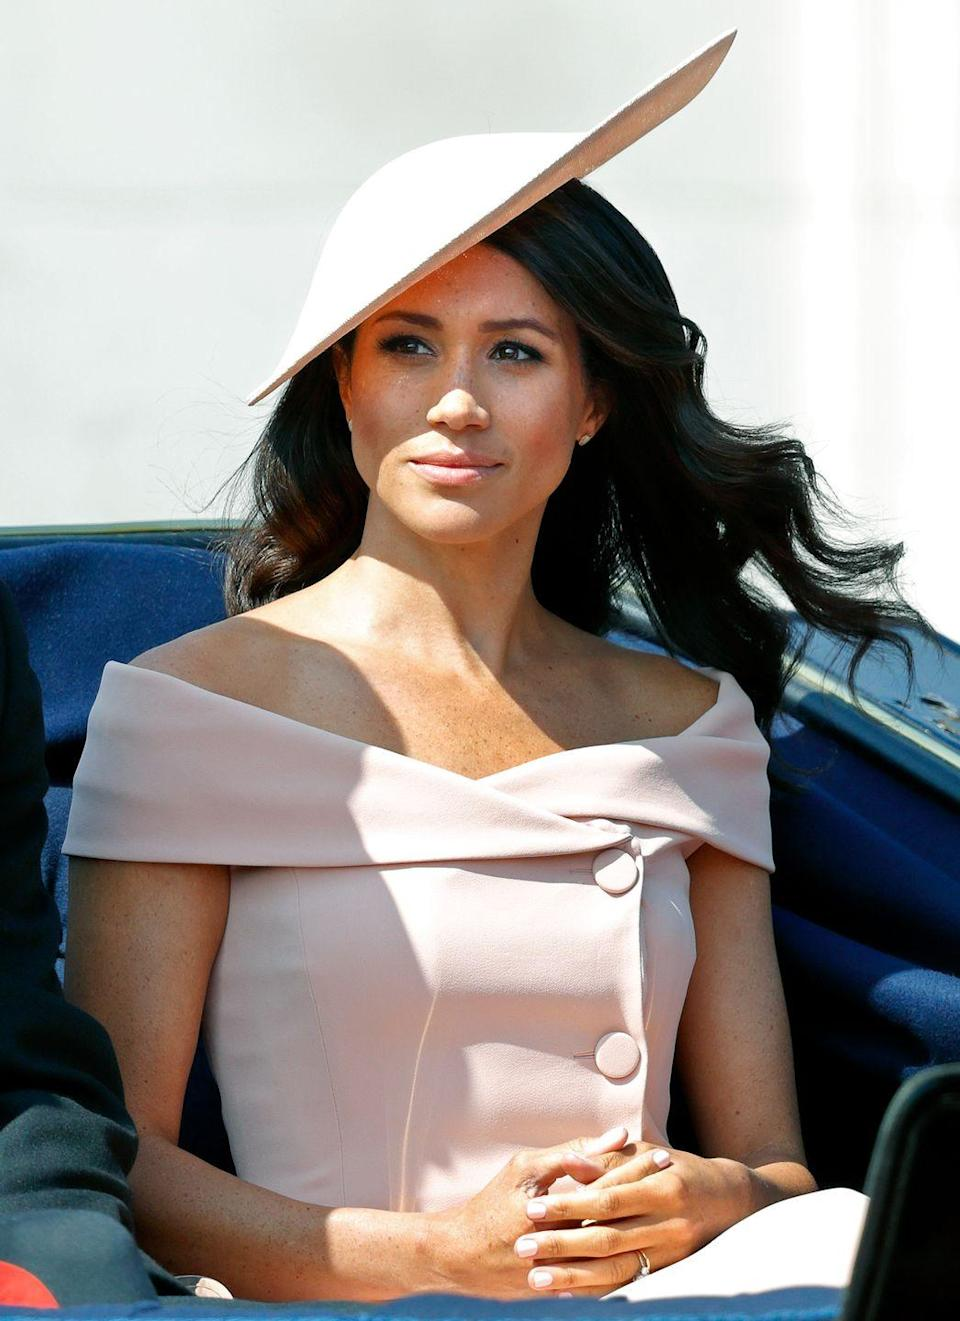 "<p>People were reportedly angry with Meghan's outfit for Trooping of the Colour in 2018, due to her <a href=""https://www.cosmopolitan.com/entertainment/a21265528/meghan-markle-trooping-the-colour-exposed-shoulders-royal-protocol-backlash-criticism/"" rel=""nofollow noopener"" target=""_blank"" data-ylk=""slk:bare shoulders"" class=""link rapid-noclick-resp"">bare shoulders</a>. However, if you ask us, this rule seems outdated.</p>"